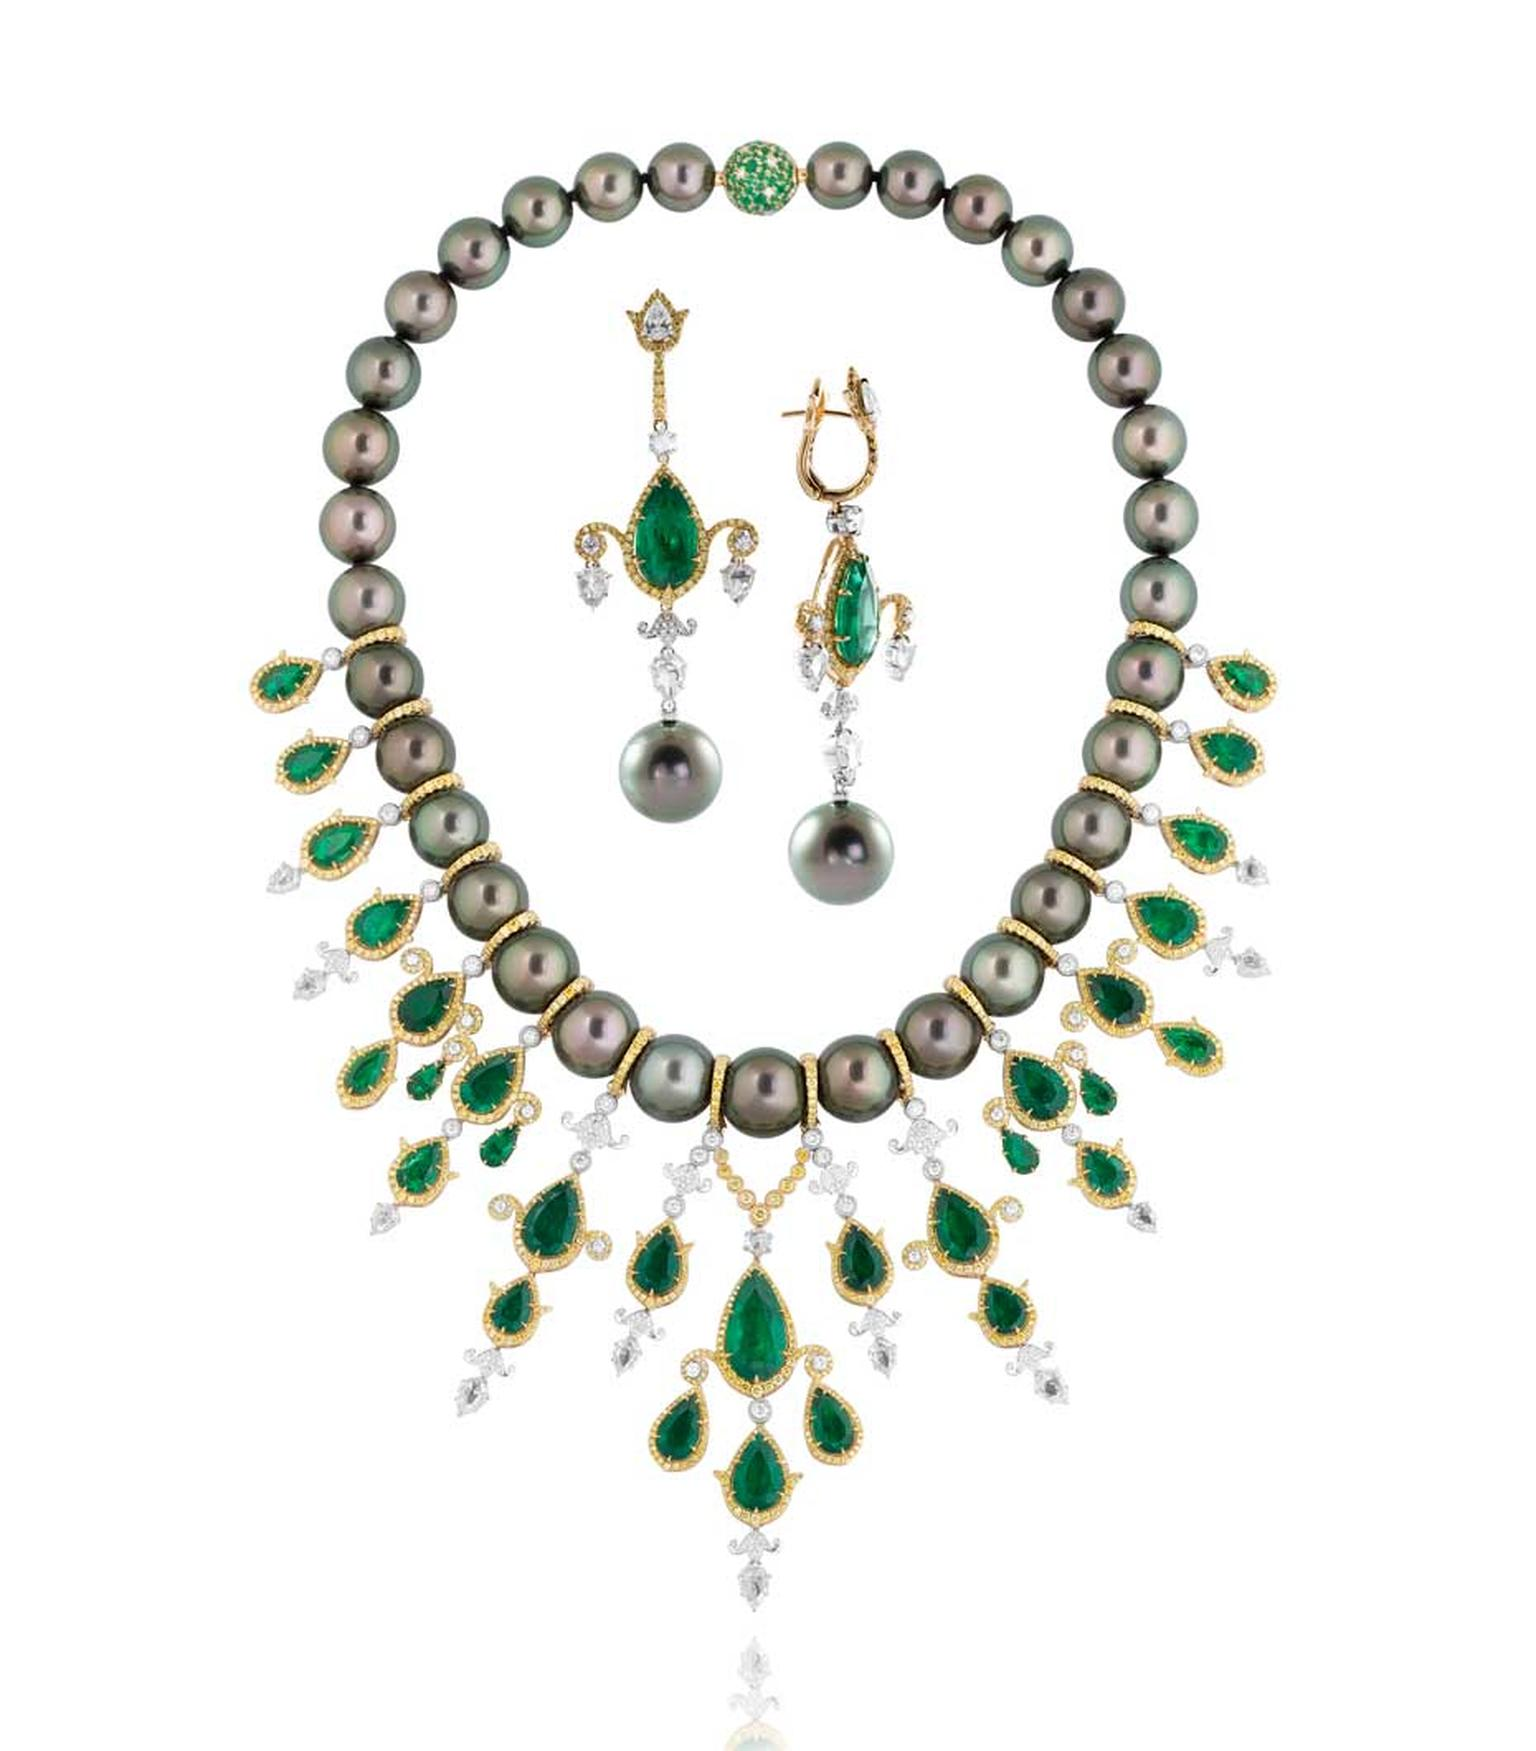 Former Couture Design Awards finalist Alessio Boschi's Breakfast in Jaipur Tahitian pearl, emerald and diamond necklace and earrings.